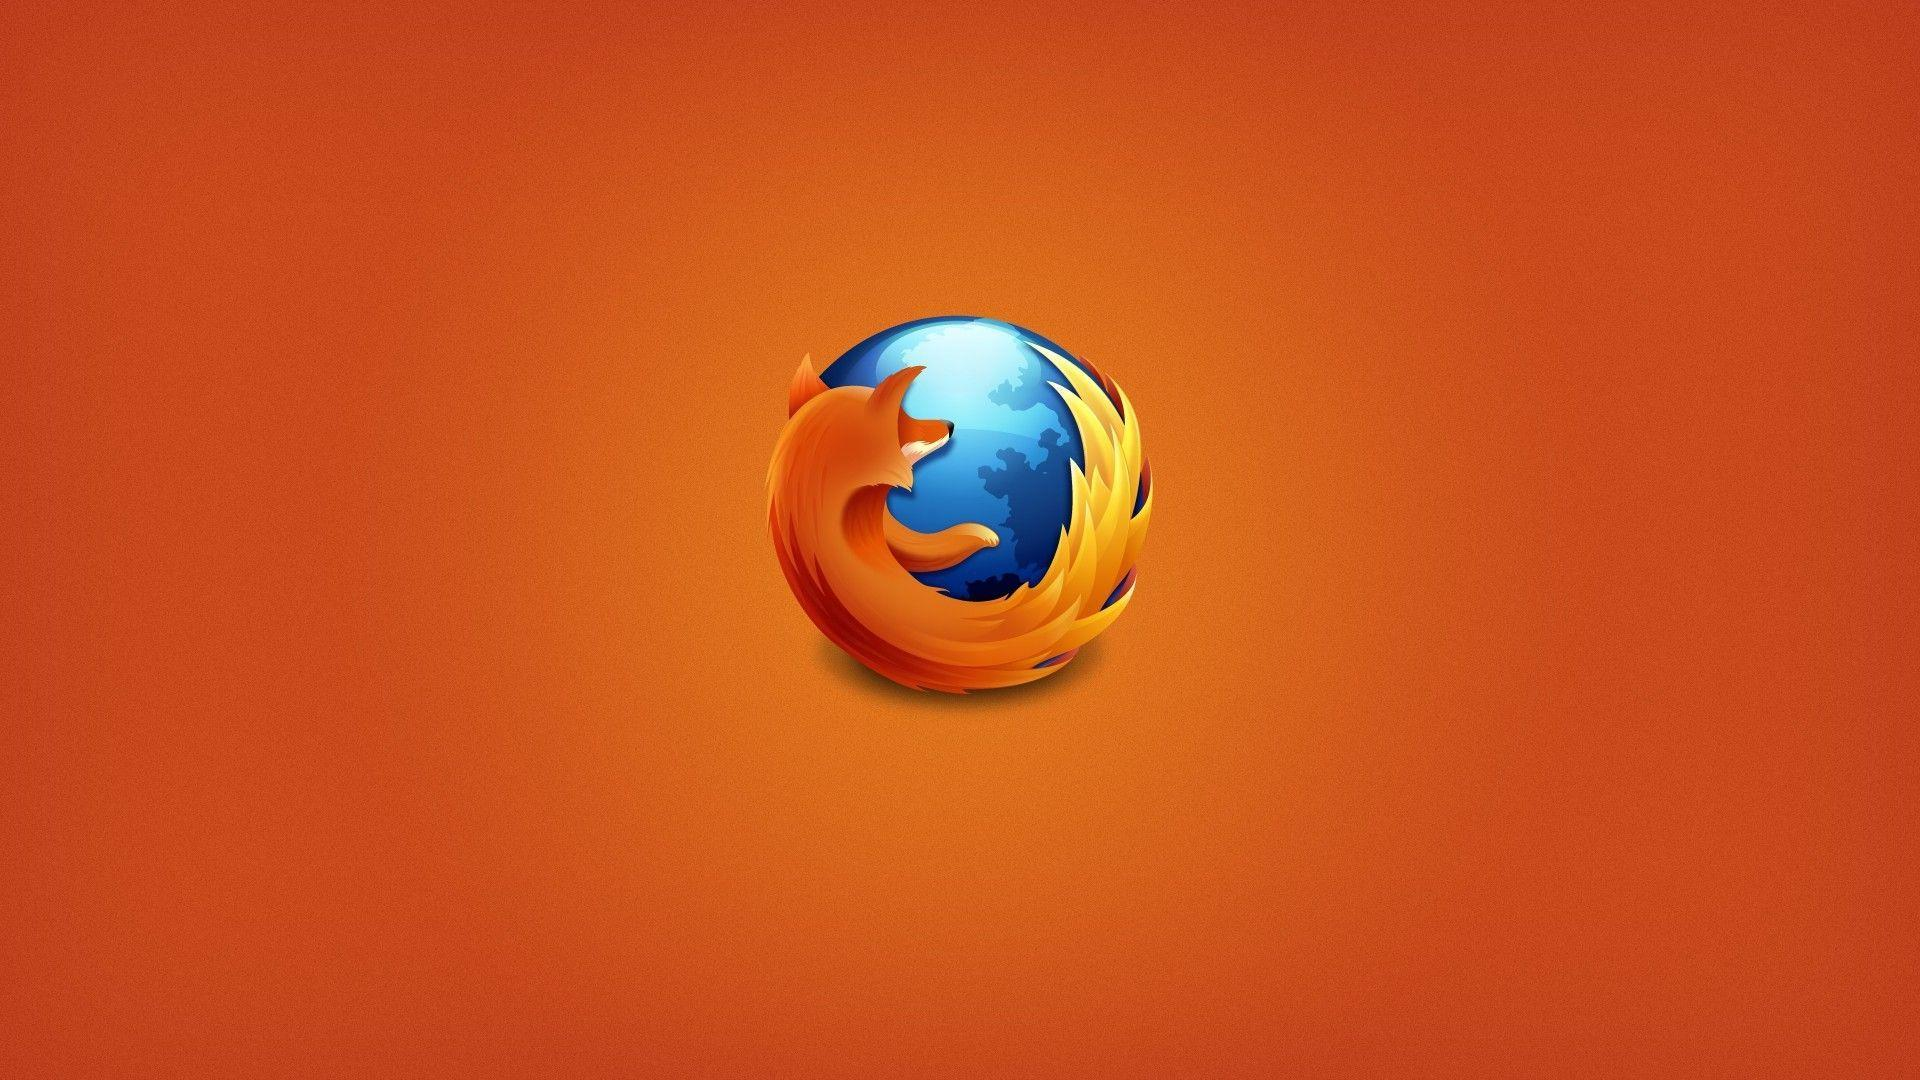 free wallpapers firefox - photo #35